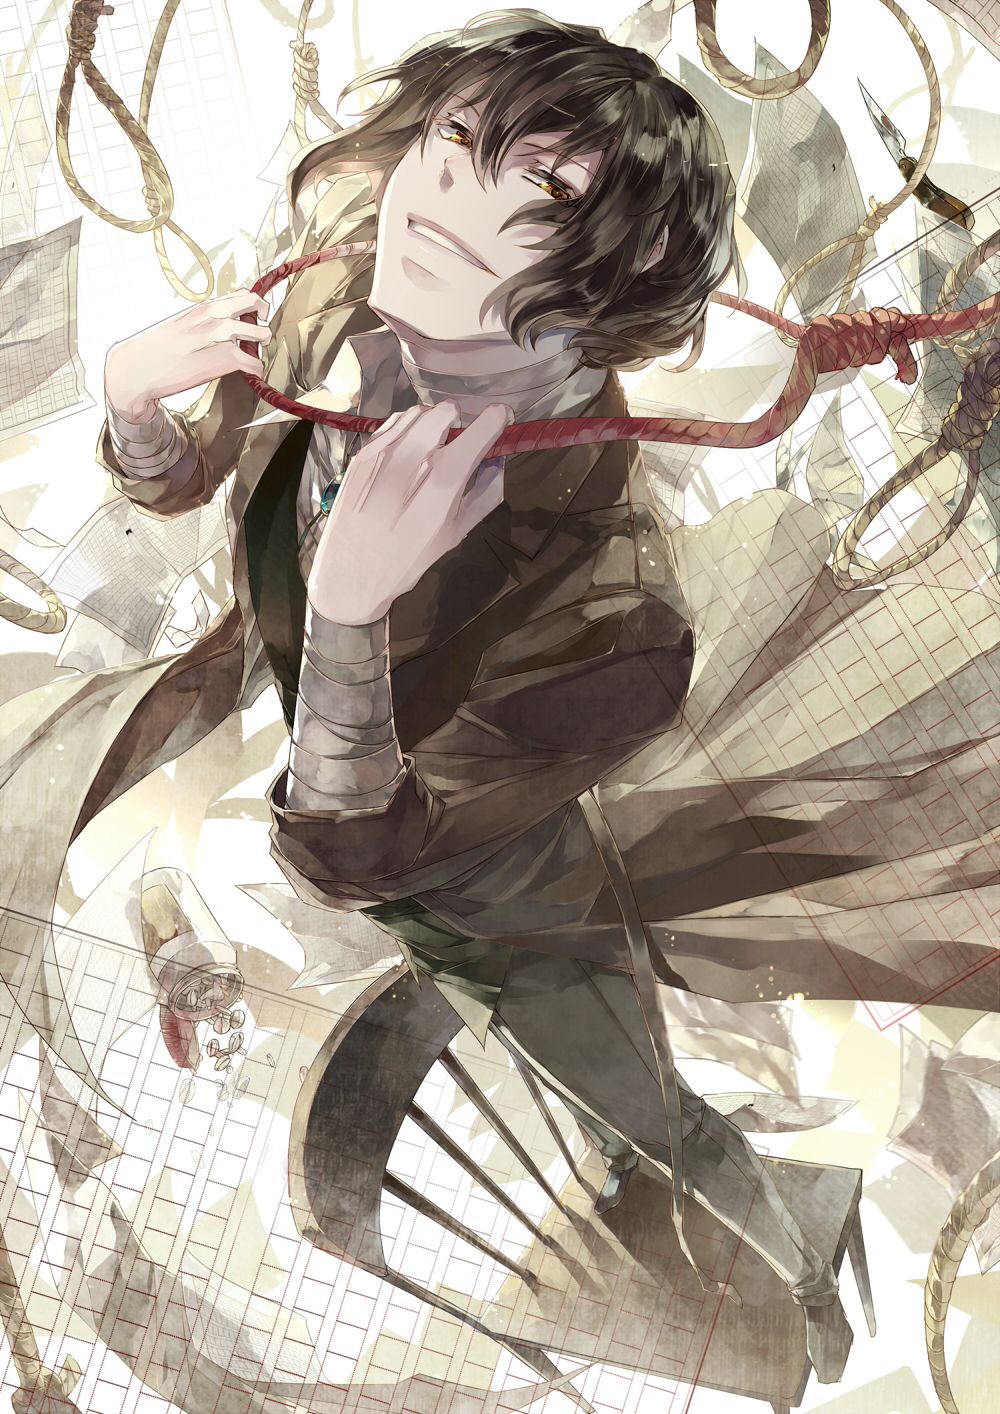 bungou stray dogs | Anime | Bungou stray dogs, Stray dogs